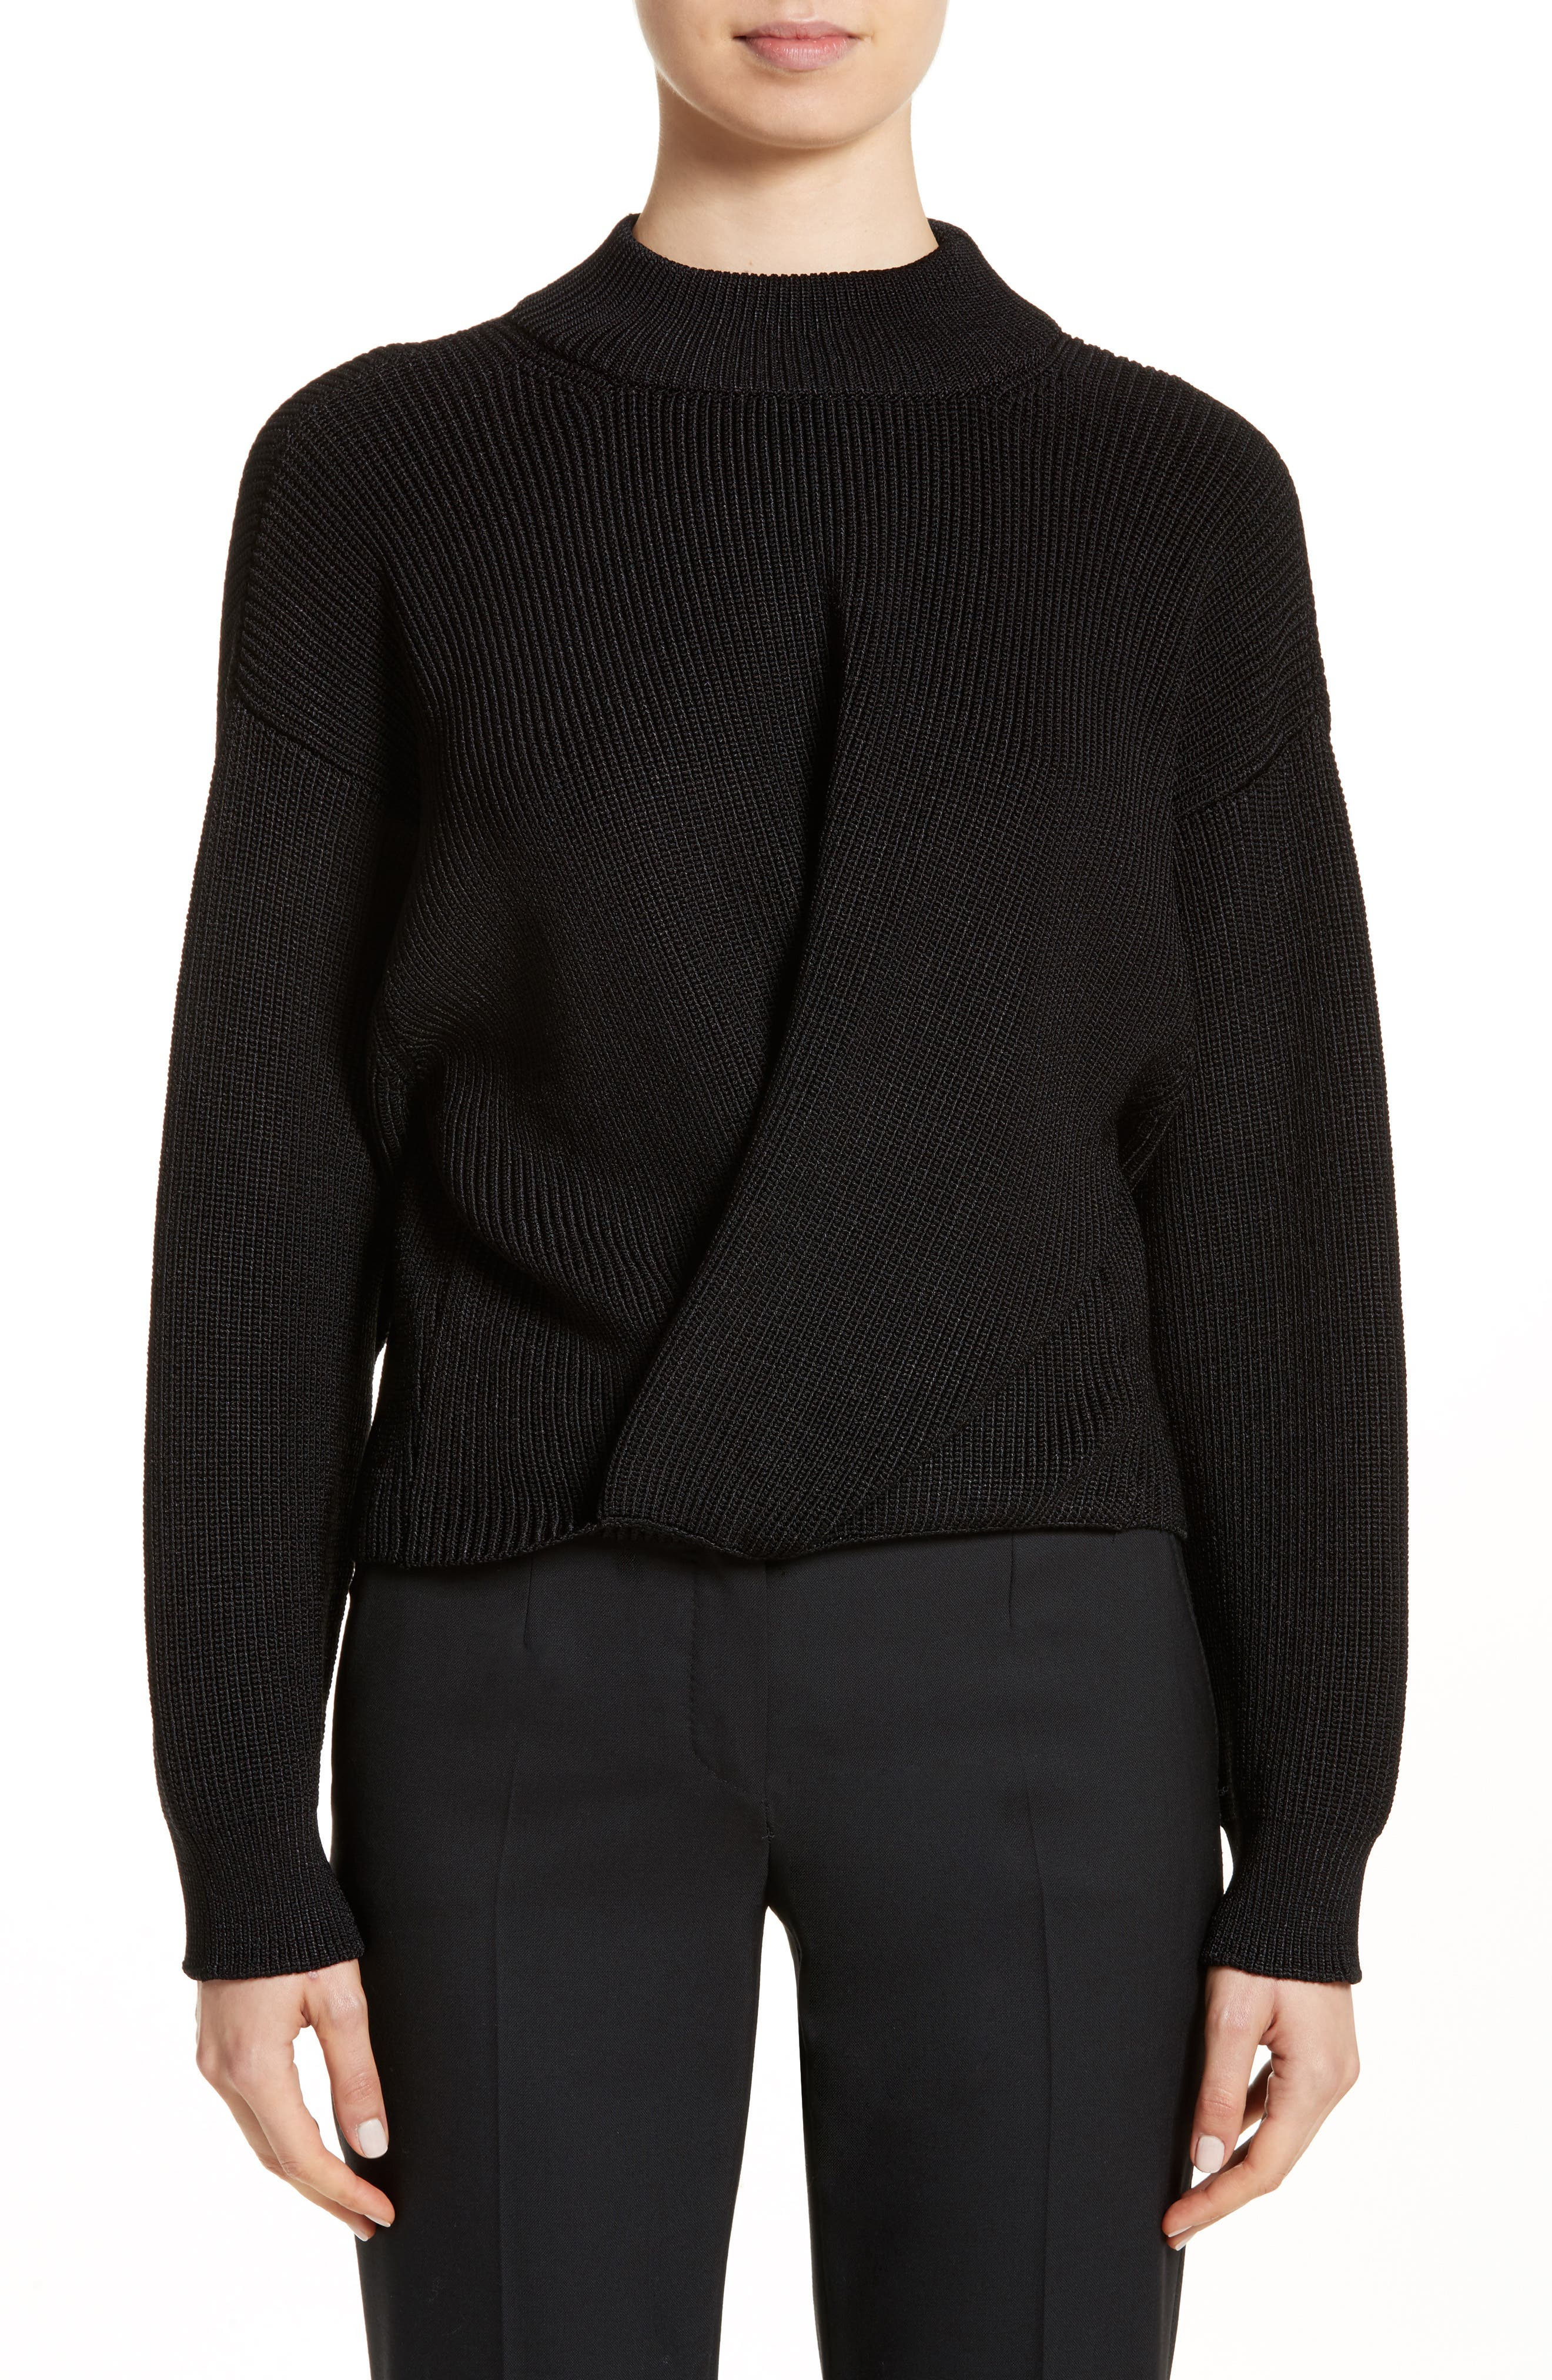 Alternate Image 1 Selected - Atlein Mock Neck Sweater